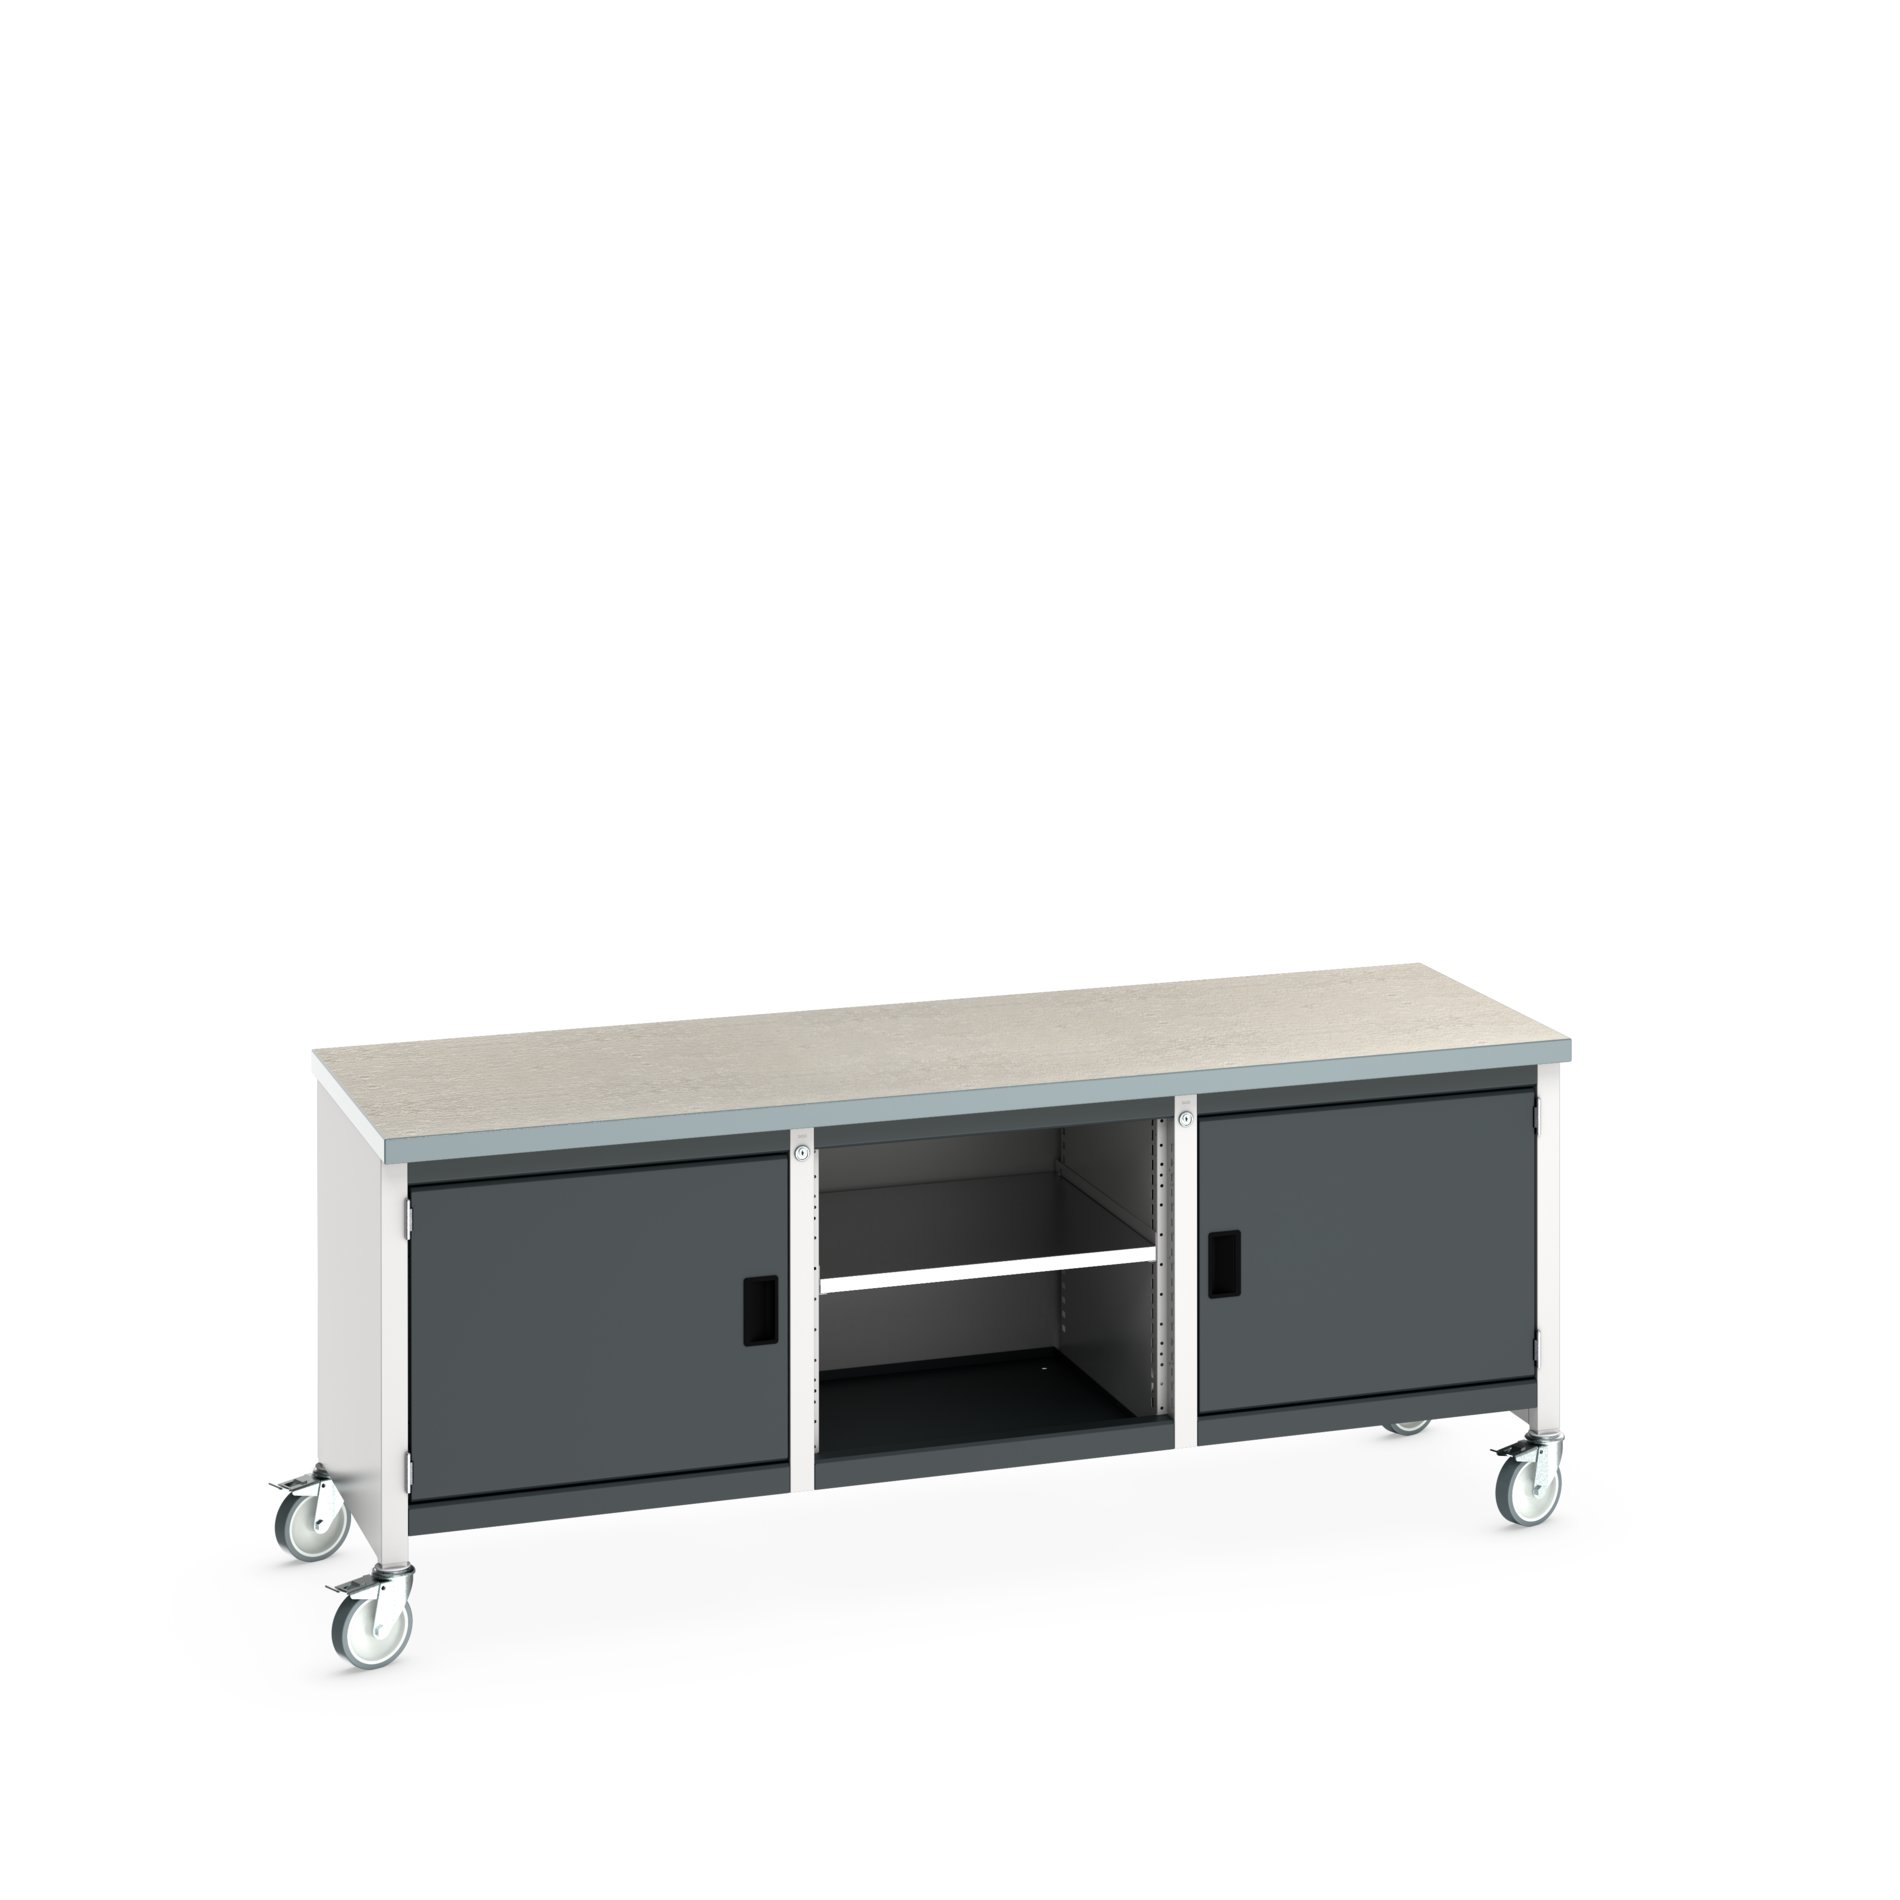 Bott Cubio Mobile Storage Bench With Full Cupboard / Open Cupboard /Full Cupboard